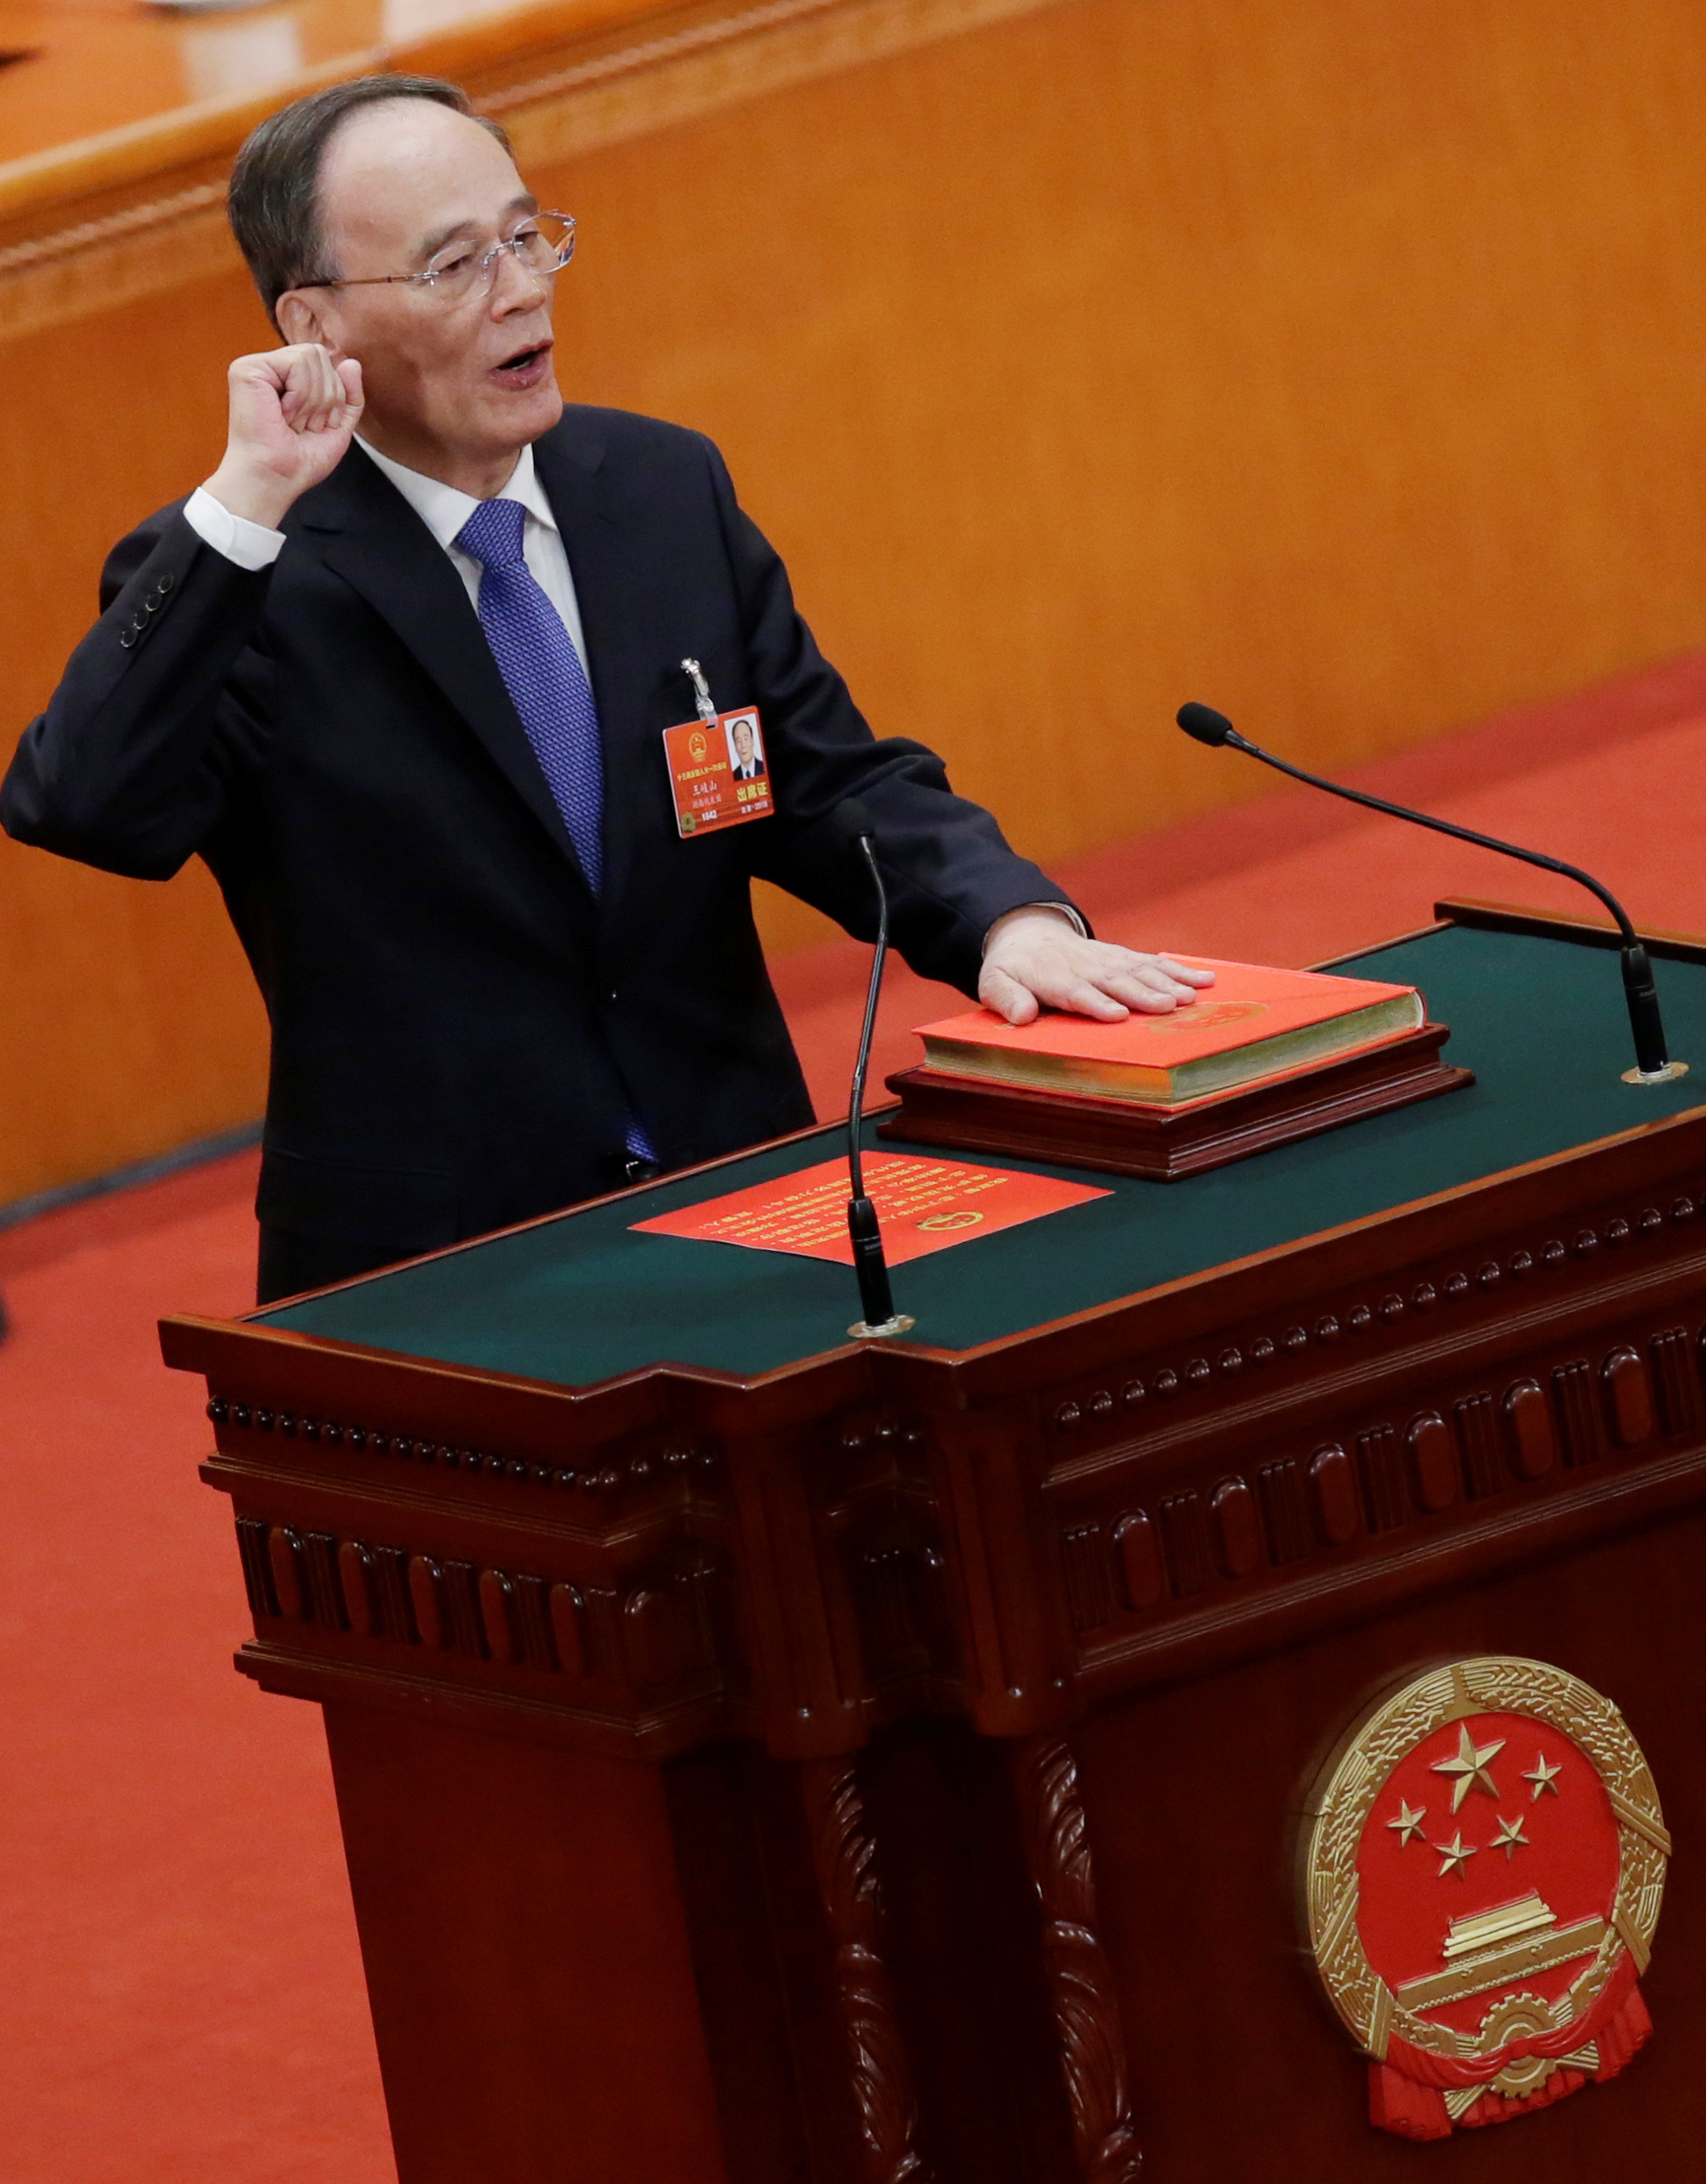 Newly elected Chinese Vice President Wang Qishan with his hand on the Constitution takes the oath at the fifth plenary session of the National People's Congress (NPC) at the Great Hall of the People in Beijing, China March 17, 2018.